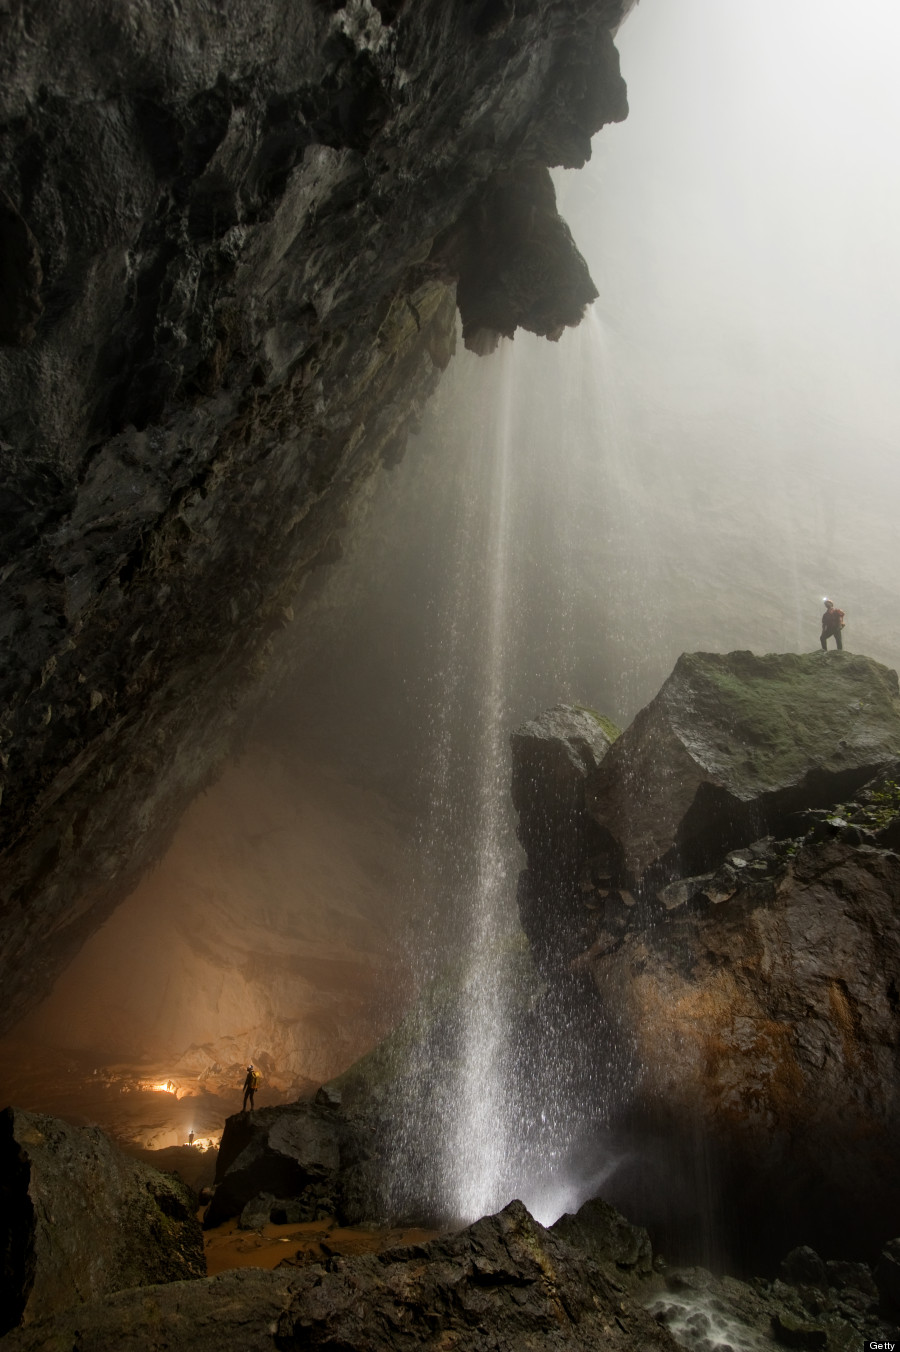 TRIP OF THE YEAR: JOIN ME TO THE WORLD'S LARGEST CAVE... - THE NEXT ROAD TRIP... WALK WITH ME TO HANG SON DOONG CAVE - VIETNAM, IT'S MAGNIFICENT! >>          Photo credit to: huffingtonpost.com